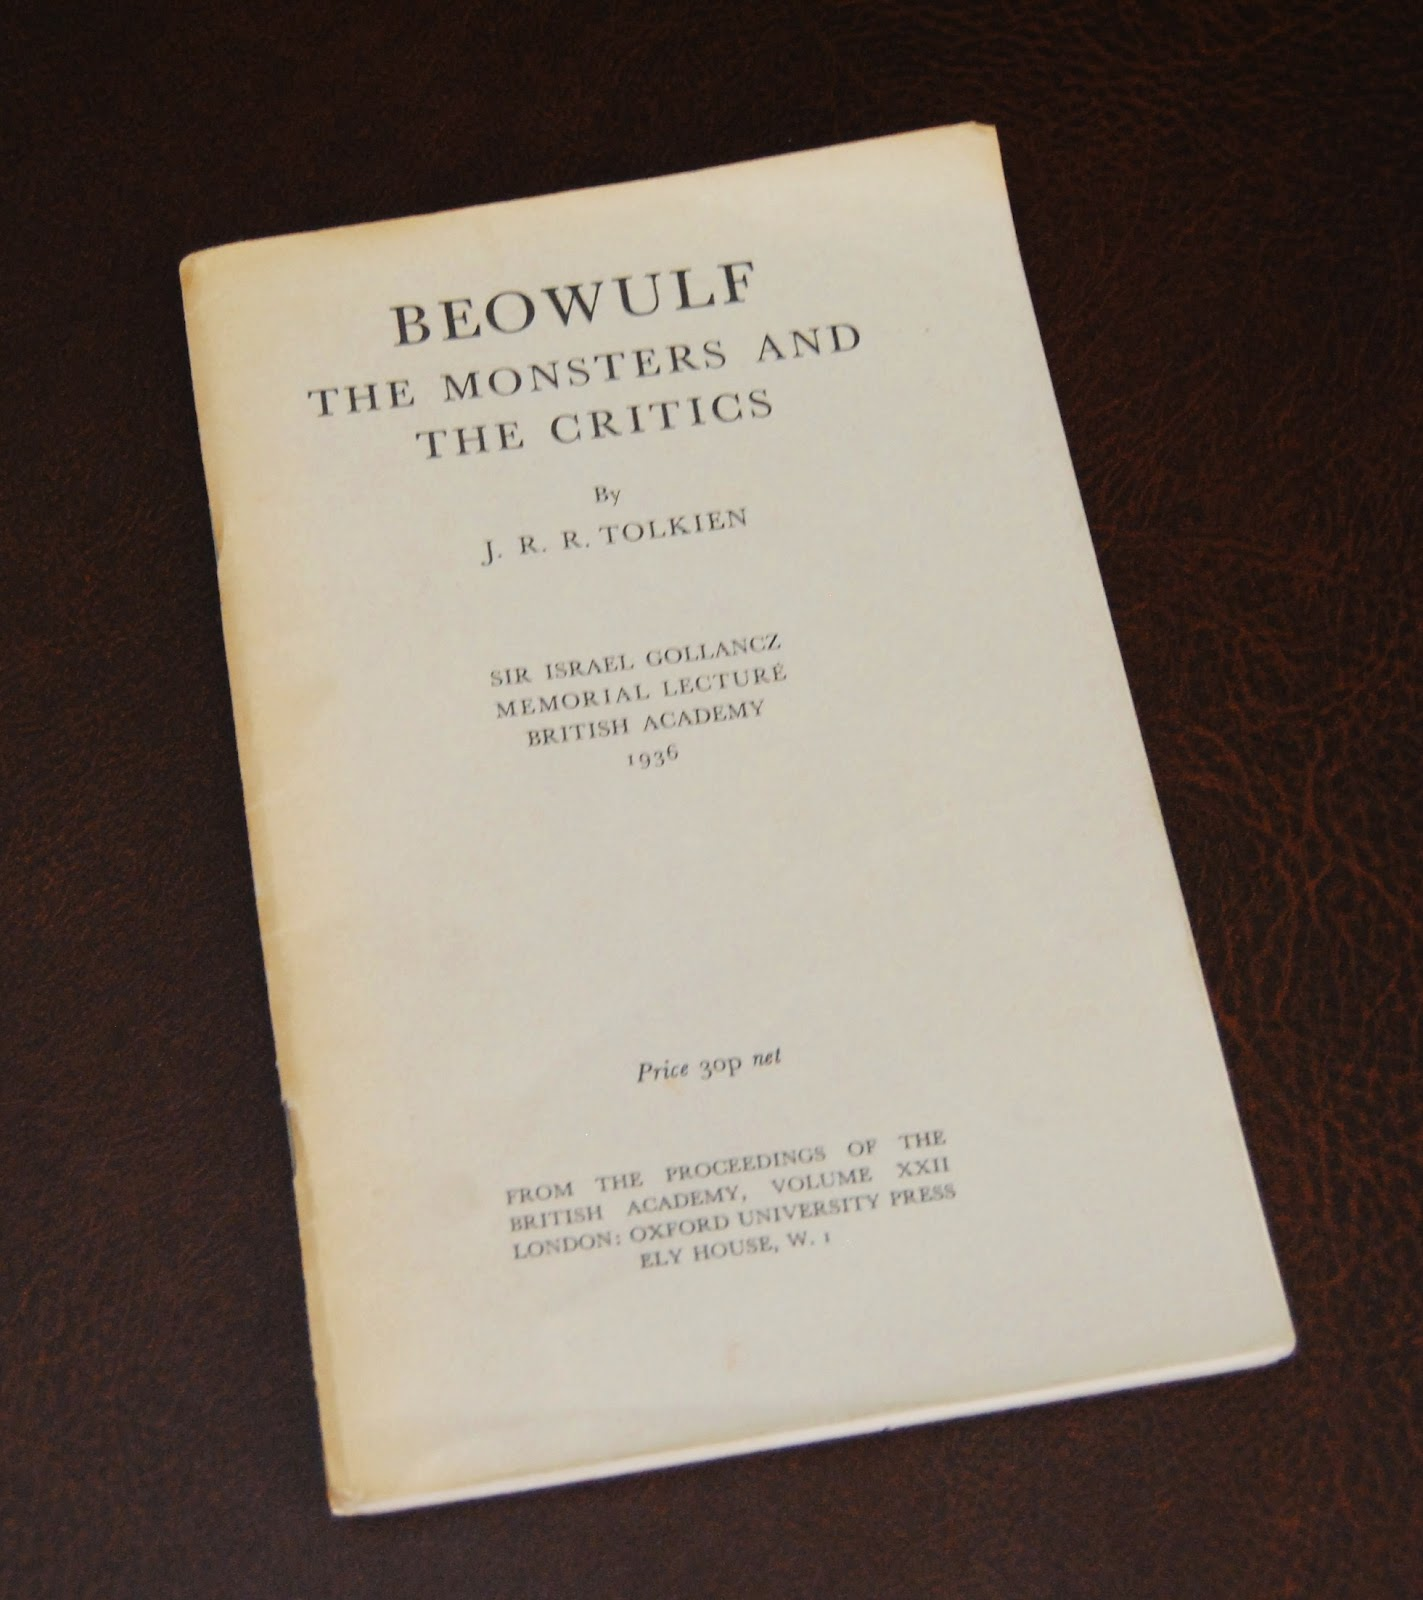 beowulf: the monsters and the critics essay Talking of tolkien, it was his influential 1936 essay, 'beowulf: the monsters and the critics', which was really responsible for a shift in the way that people read beowulf rather than viewing it as a historical document, tolkien urged, we should be reading and appreciating it as a work of poetry.